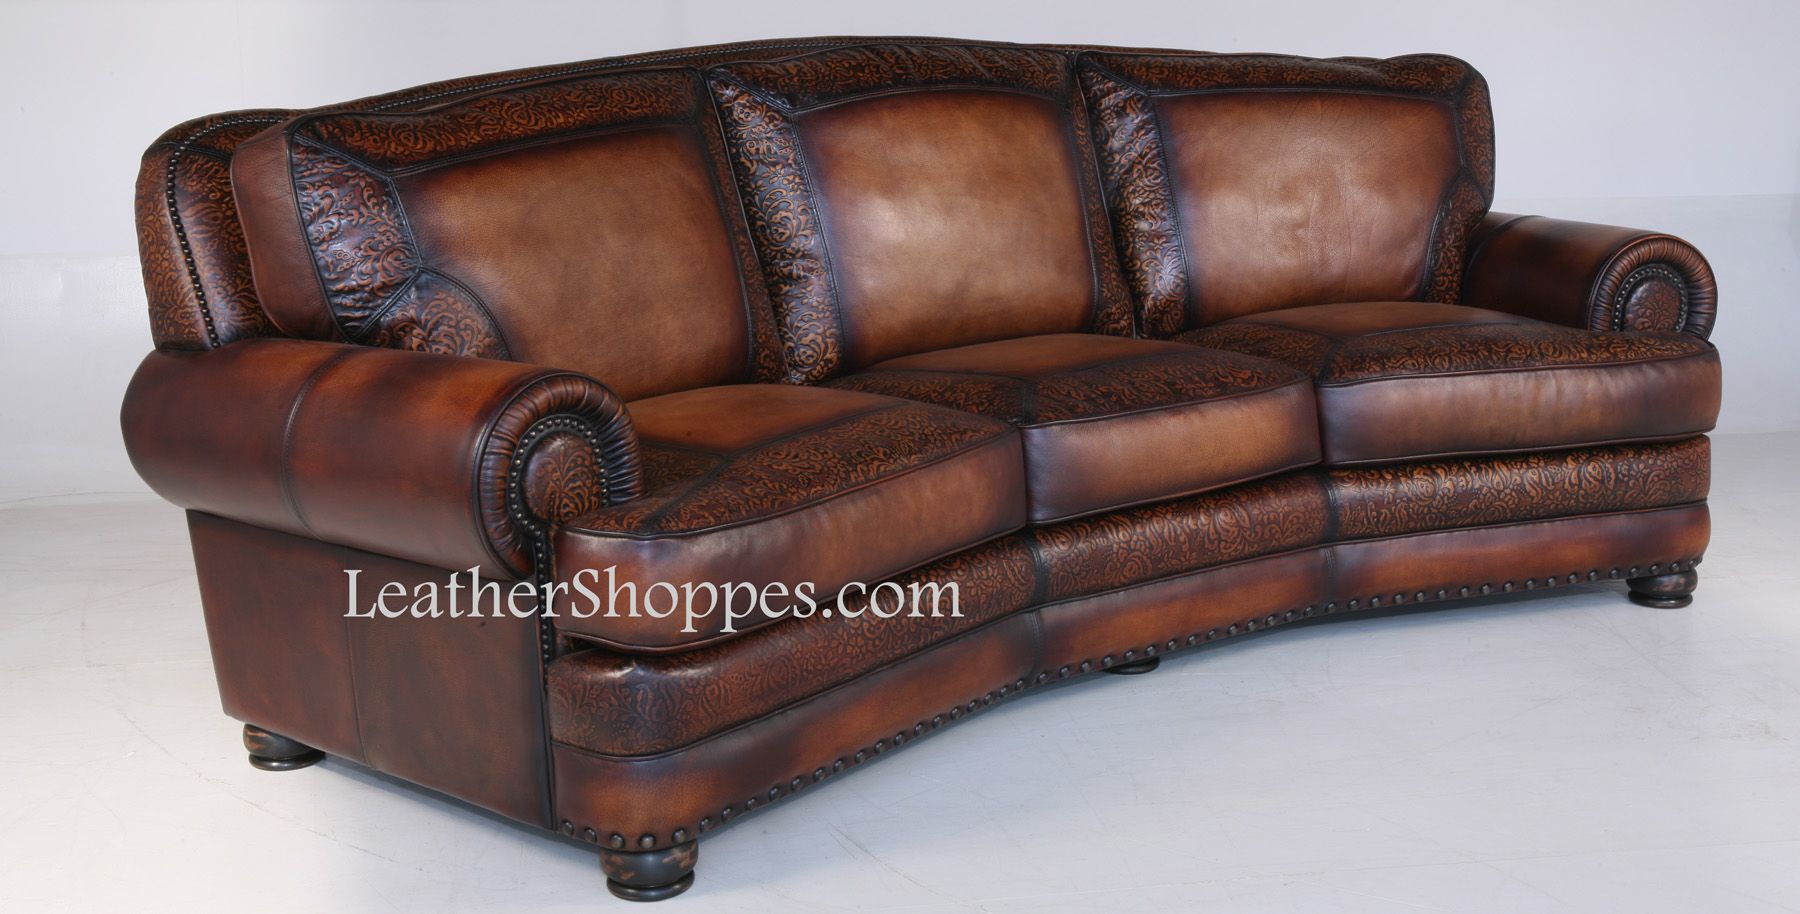 Western Living Room Furniture Sandringham Conversation Sofa At Leathershoppescom Leather